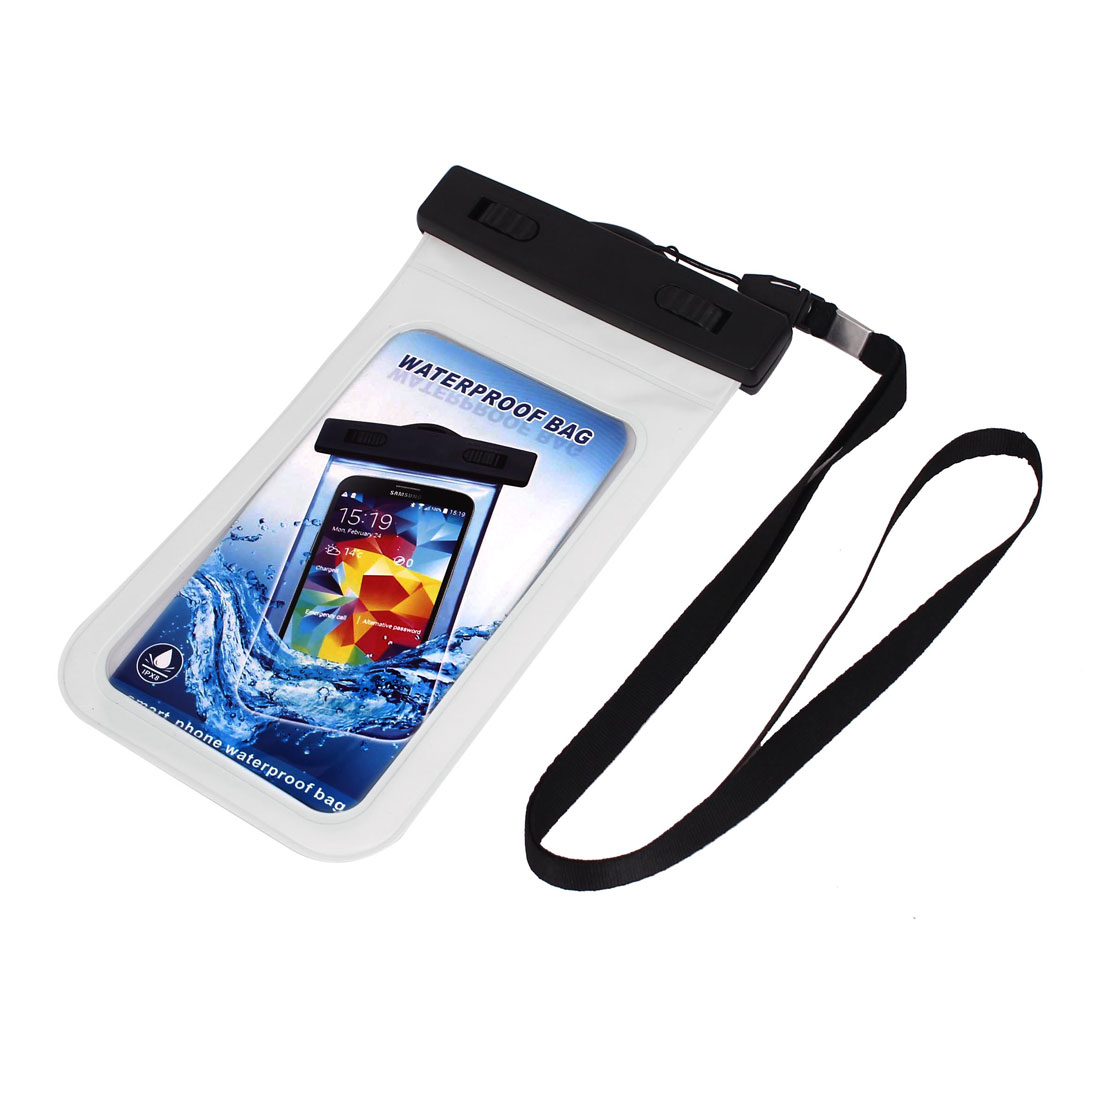 "Waterproof Bag Holder Pouch White for 5.5"" Mobile Phone w Neck Strap"